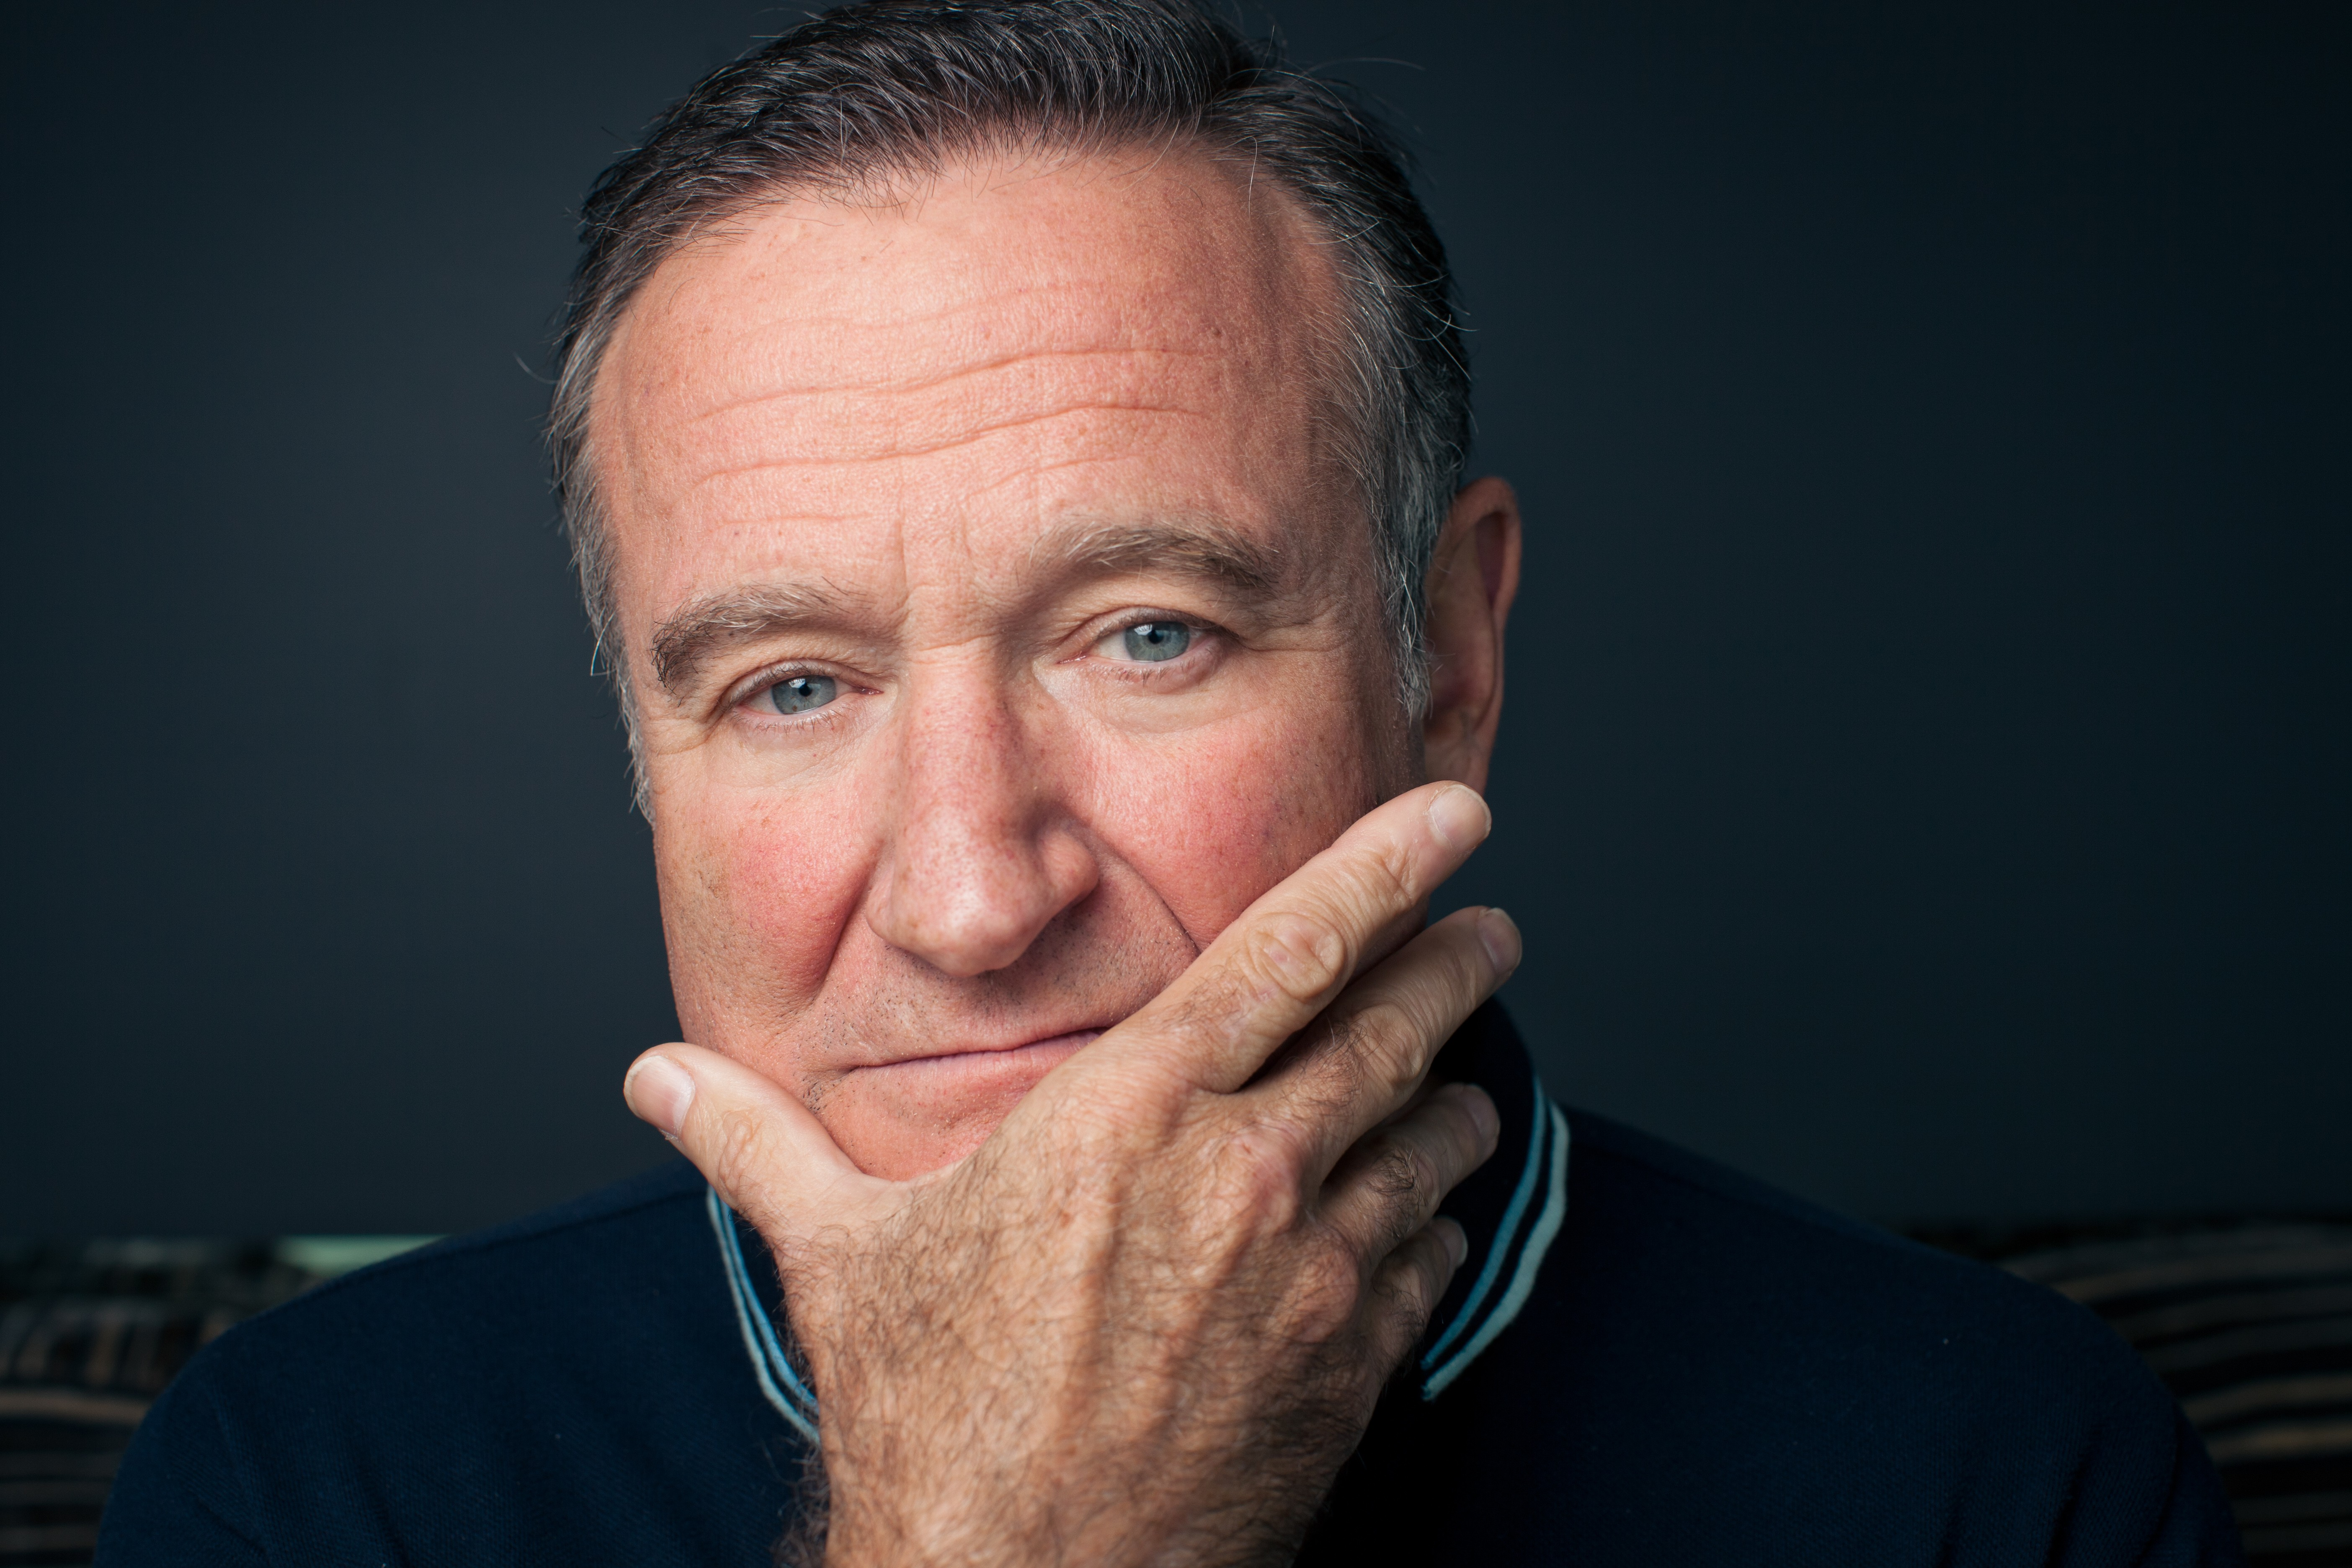 Breaking Bad Quotes Wallpaper Wallpaper Robin Williams Most Popular Celebs In 2015